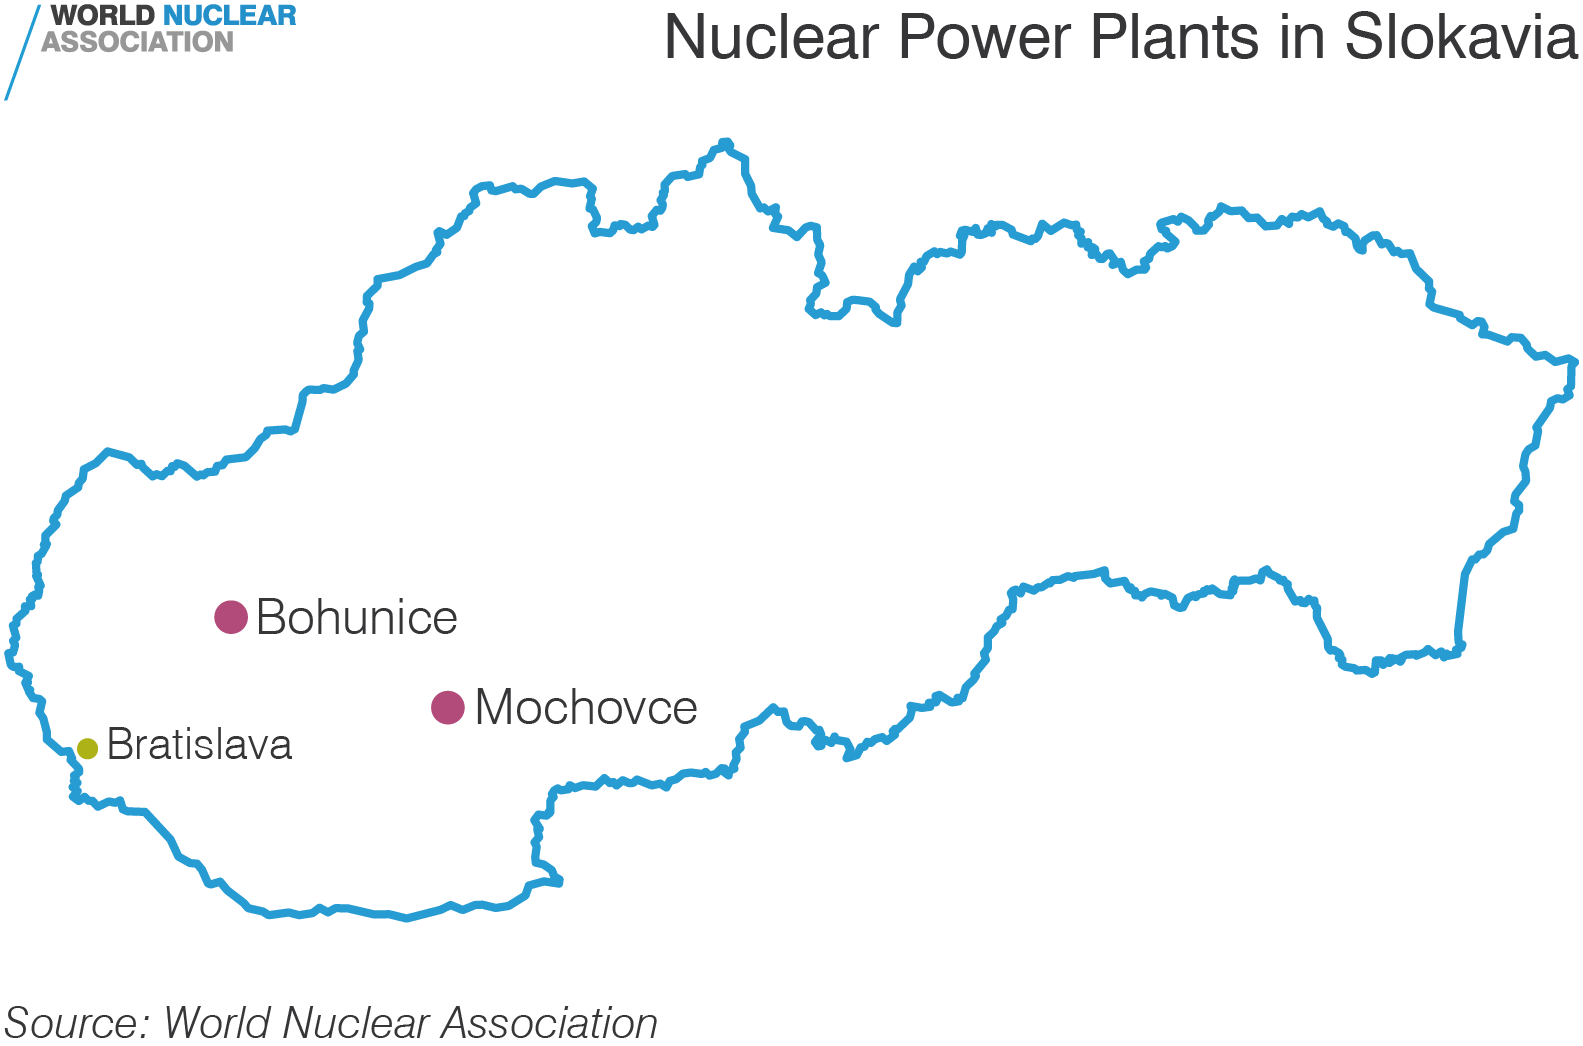 Nuclear Power Plants in Slovakia